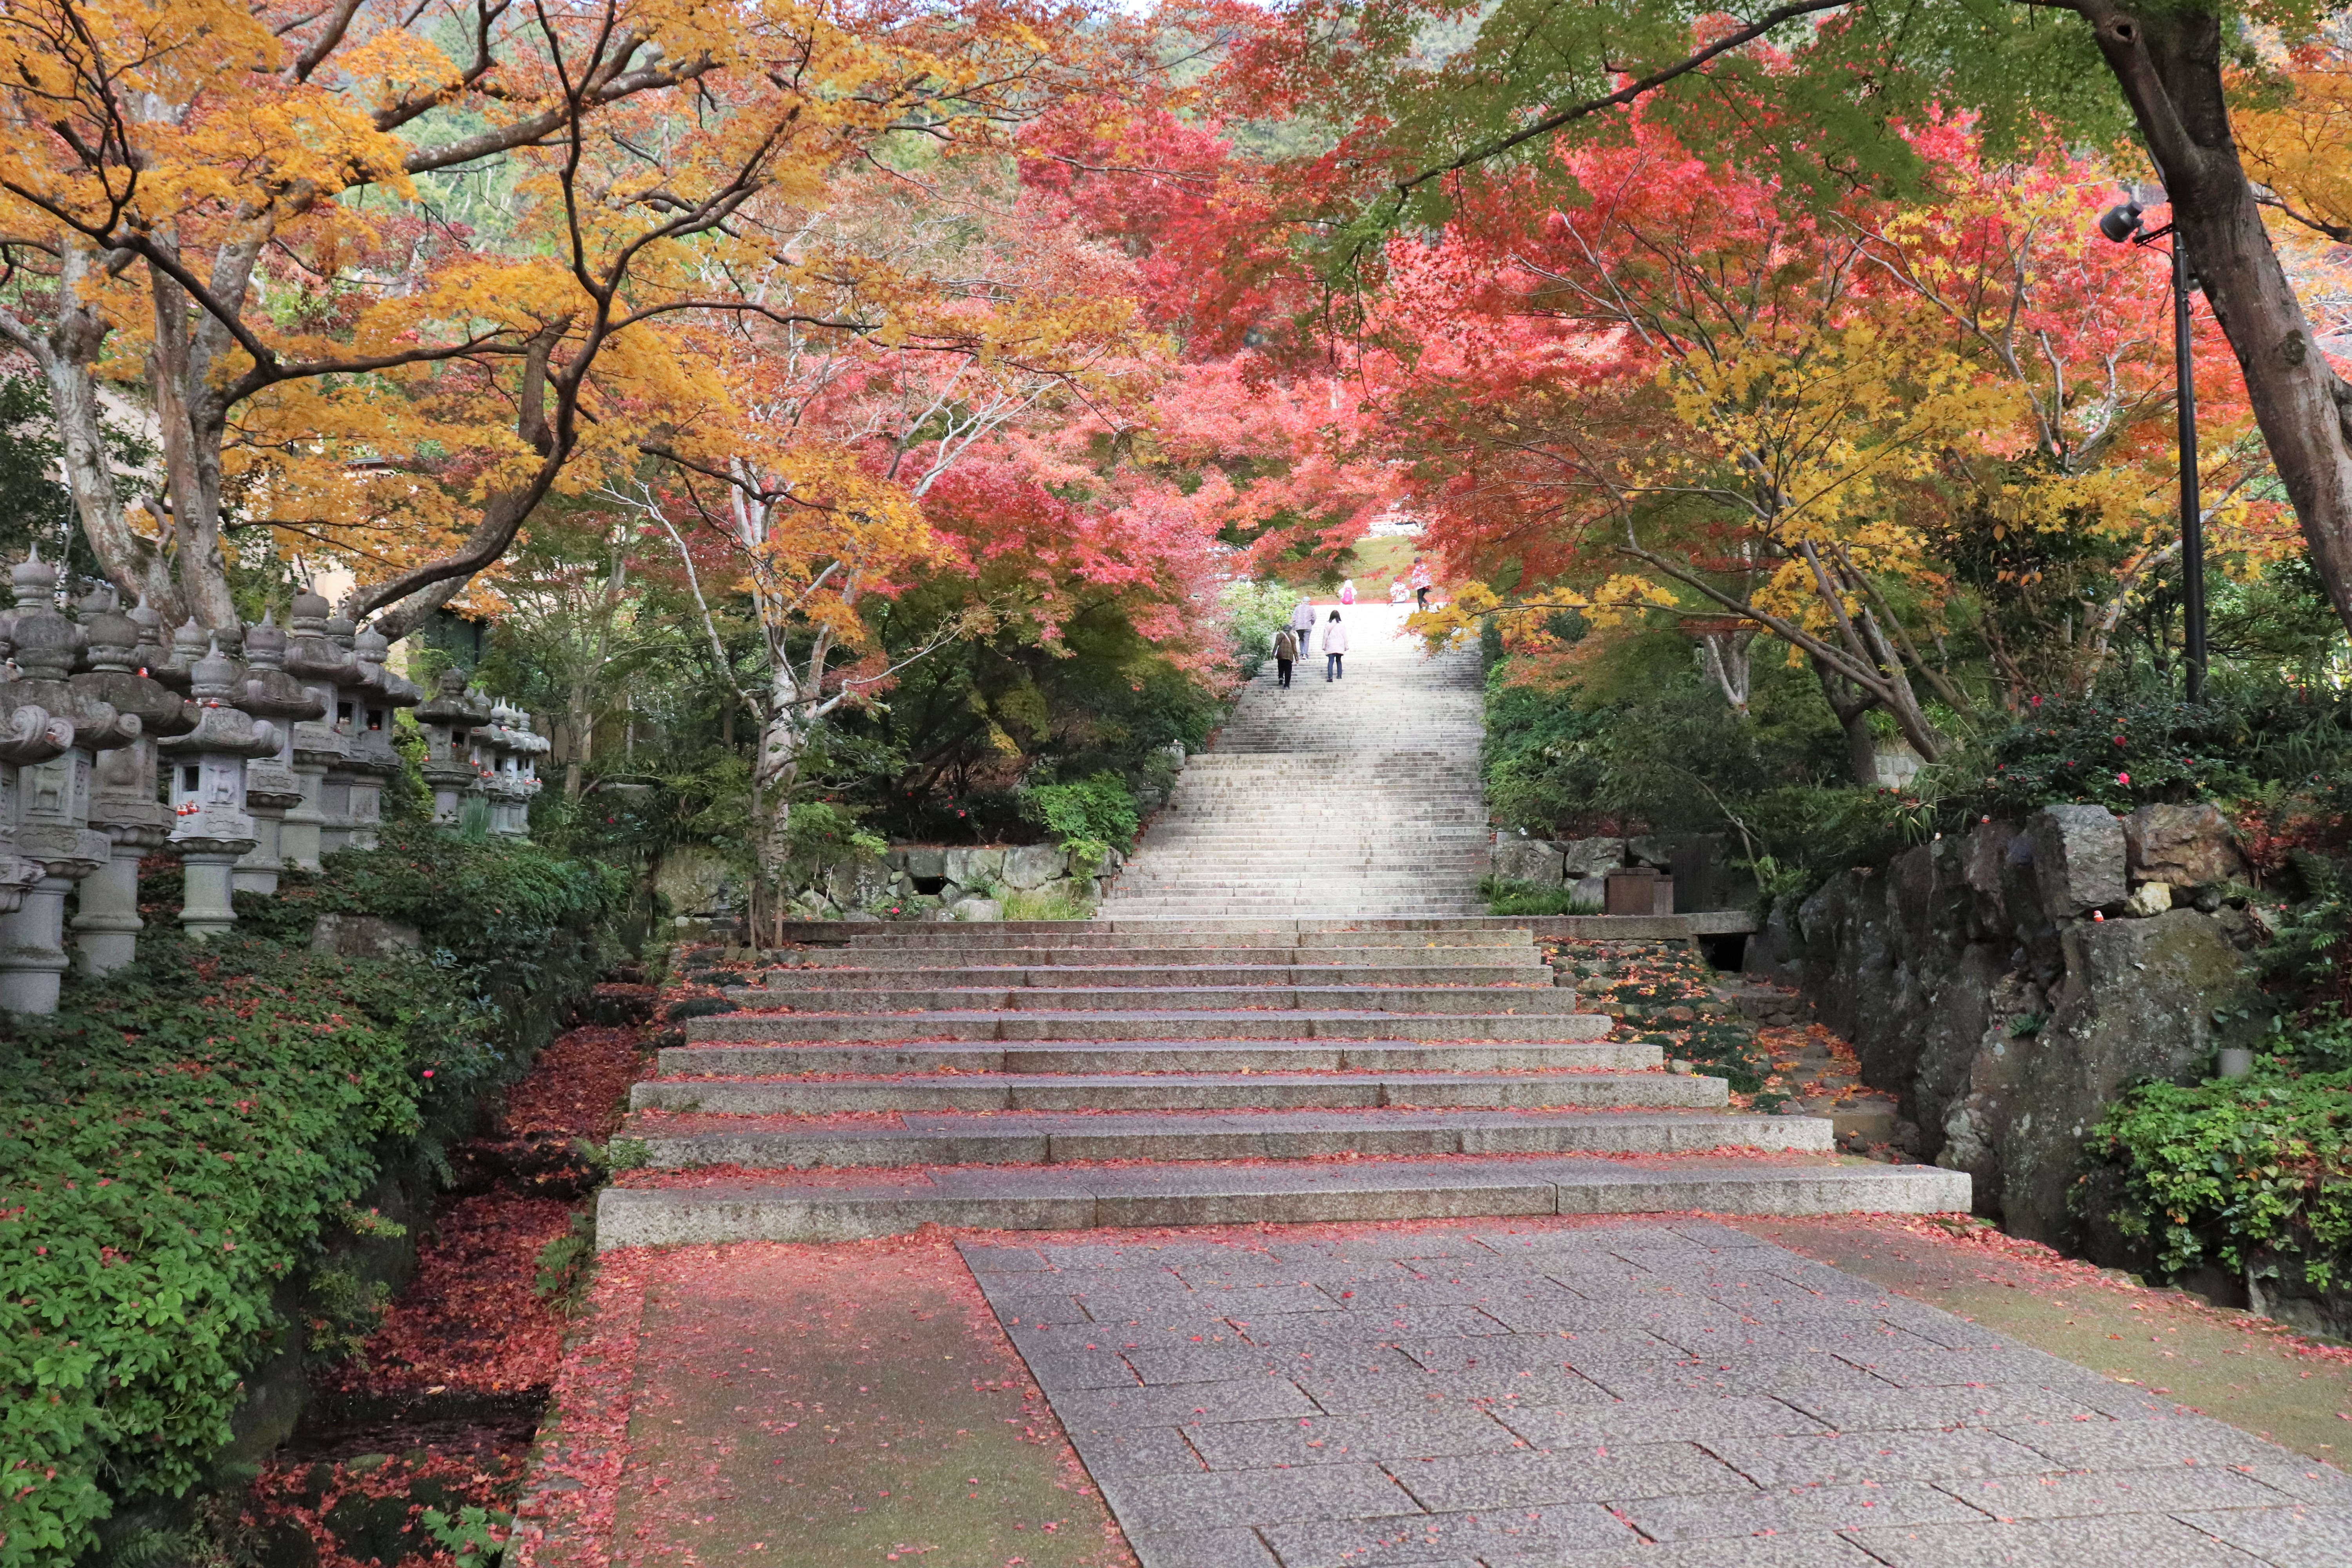 stone path lined with fall foliage at katsuo-ji temple